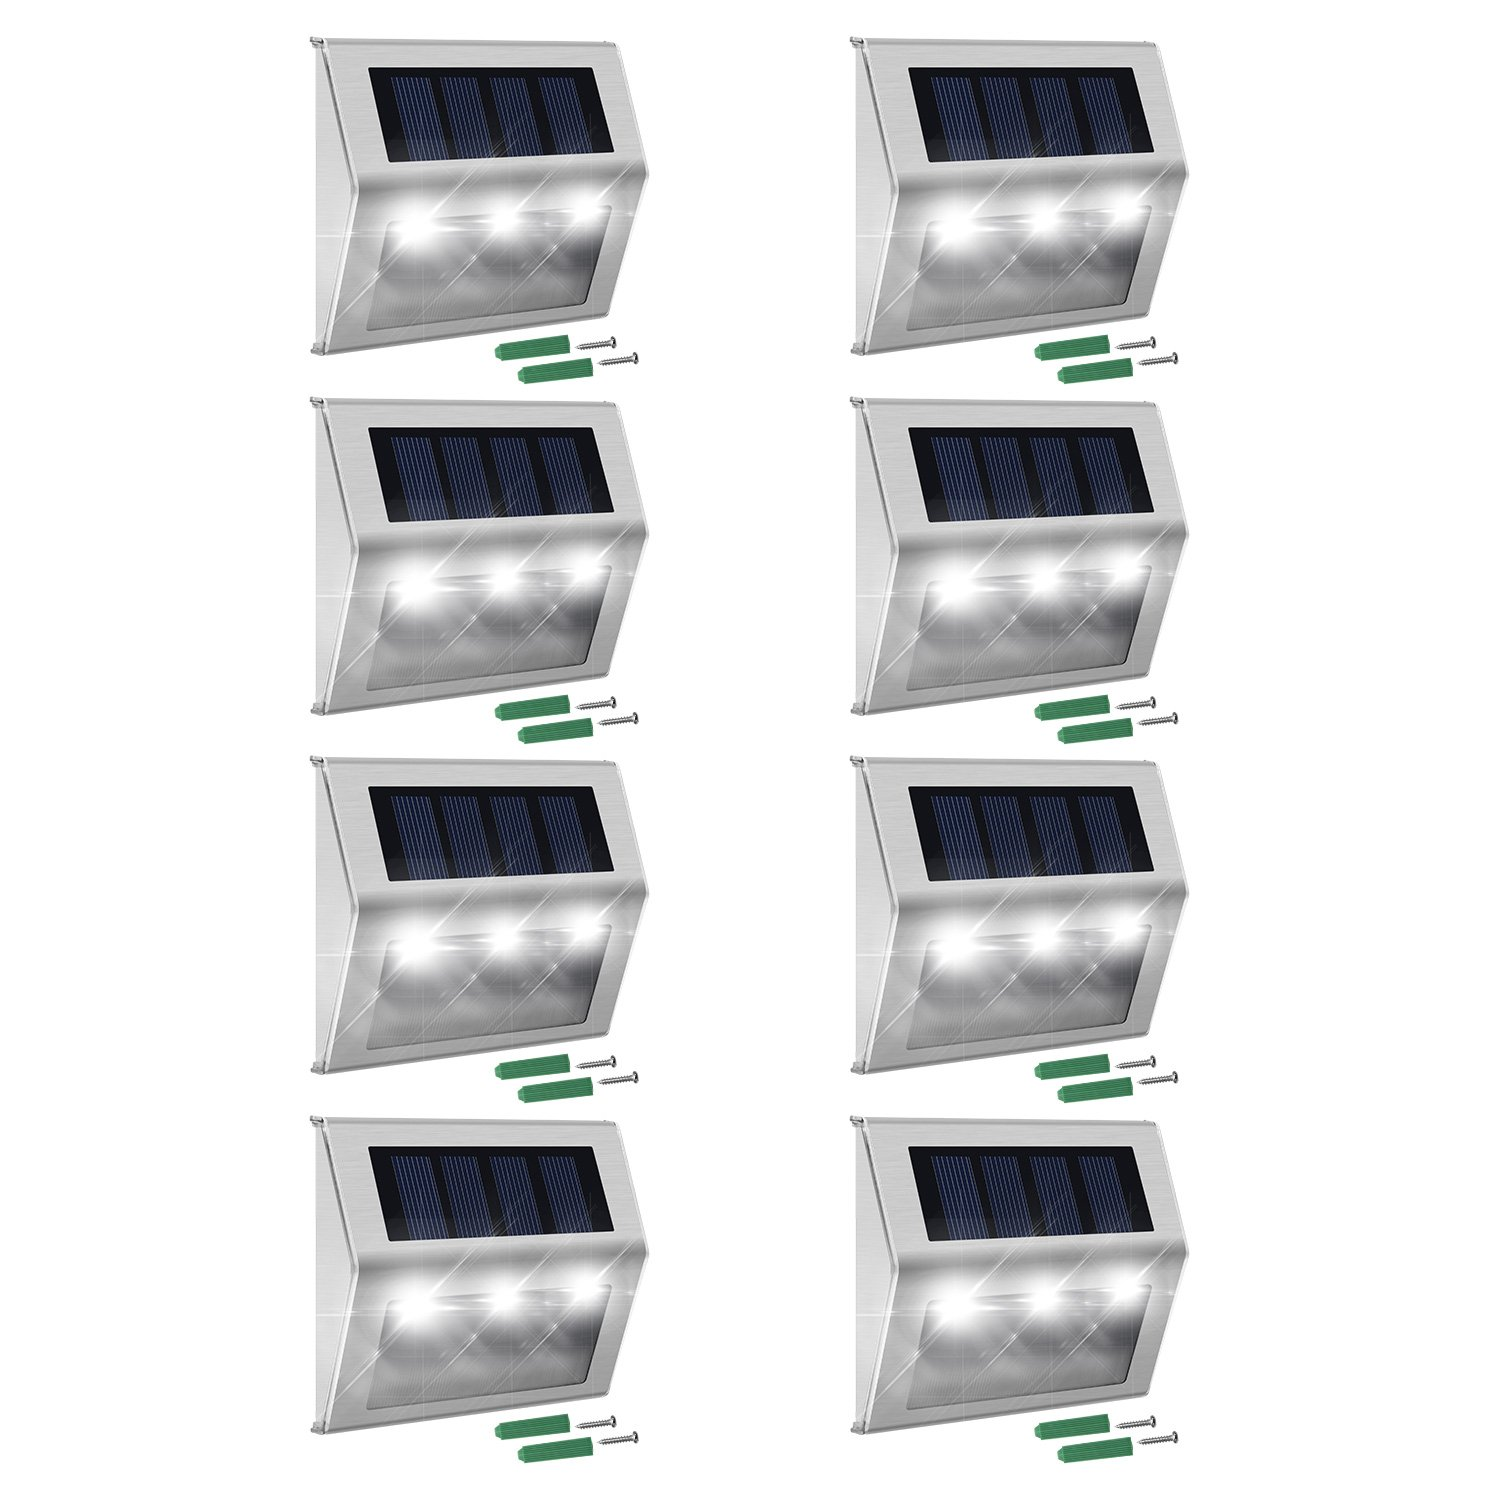 Solar Step Lights with Larger Battery Capacity JACKYLED 8-Pack LED Solar Powered Weatherproof Outdoor Lighting for Steps Stairs Paths Patio Decks